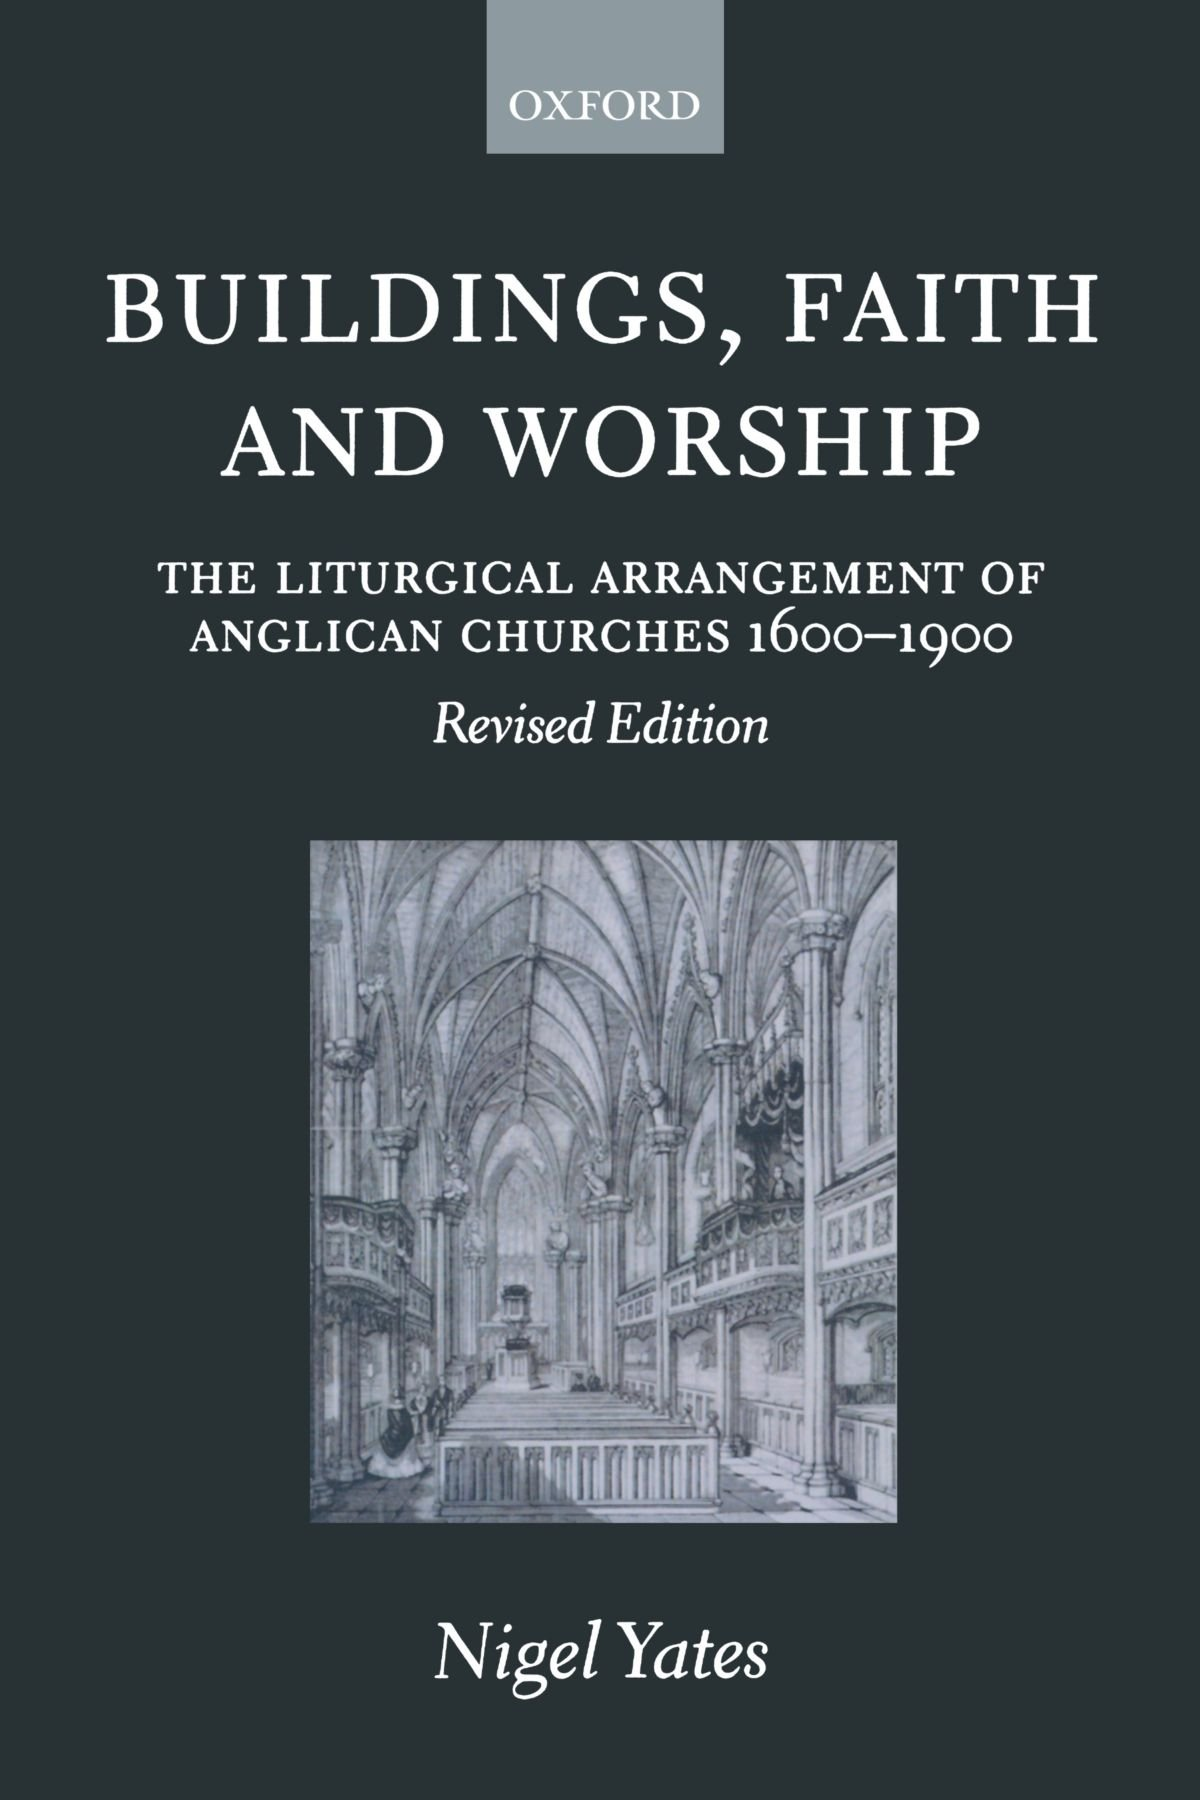 Buildings, Faith, and Worship: The Liturgical Arrangement of Anglican Churches 1600-1900 by Brand: Oxford University Press, USA